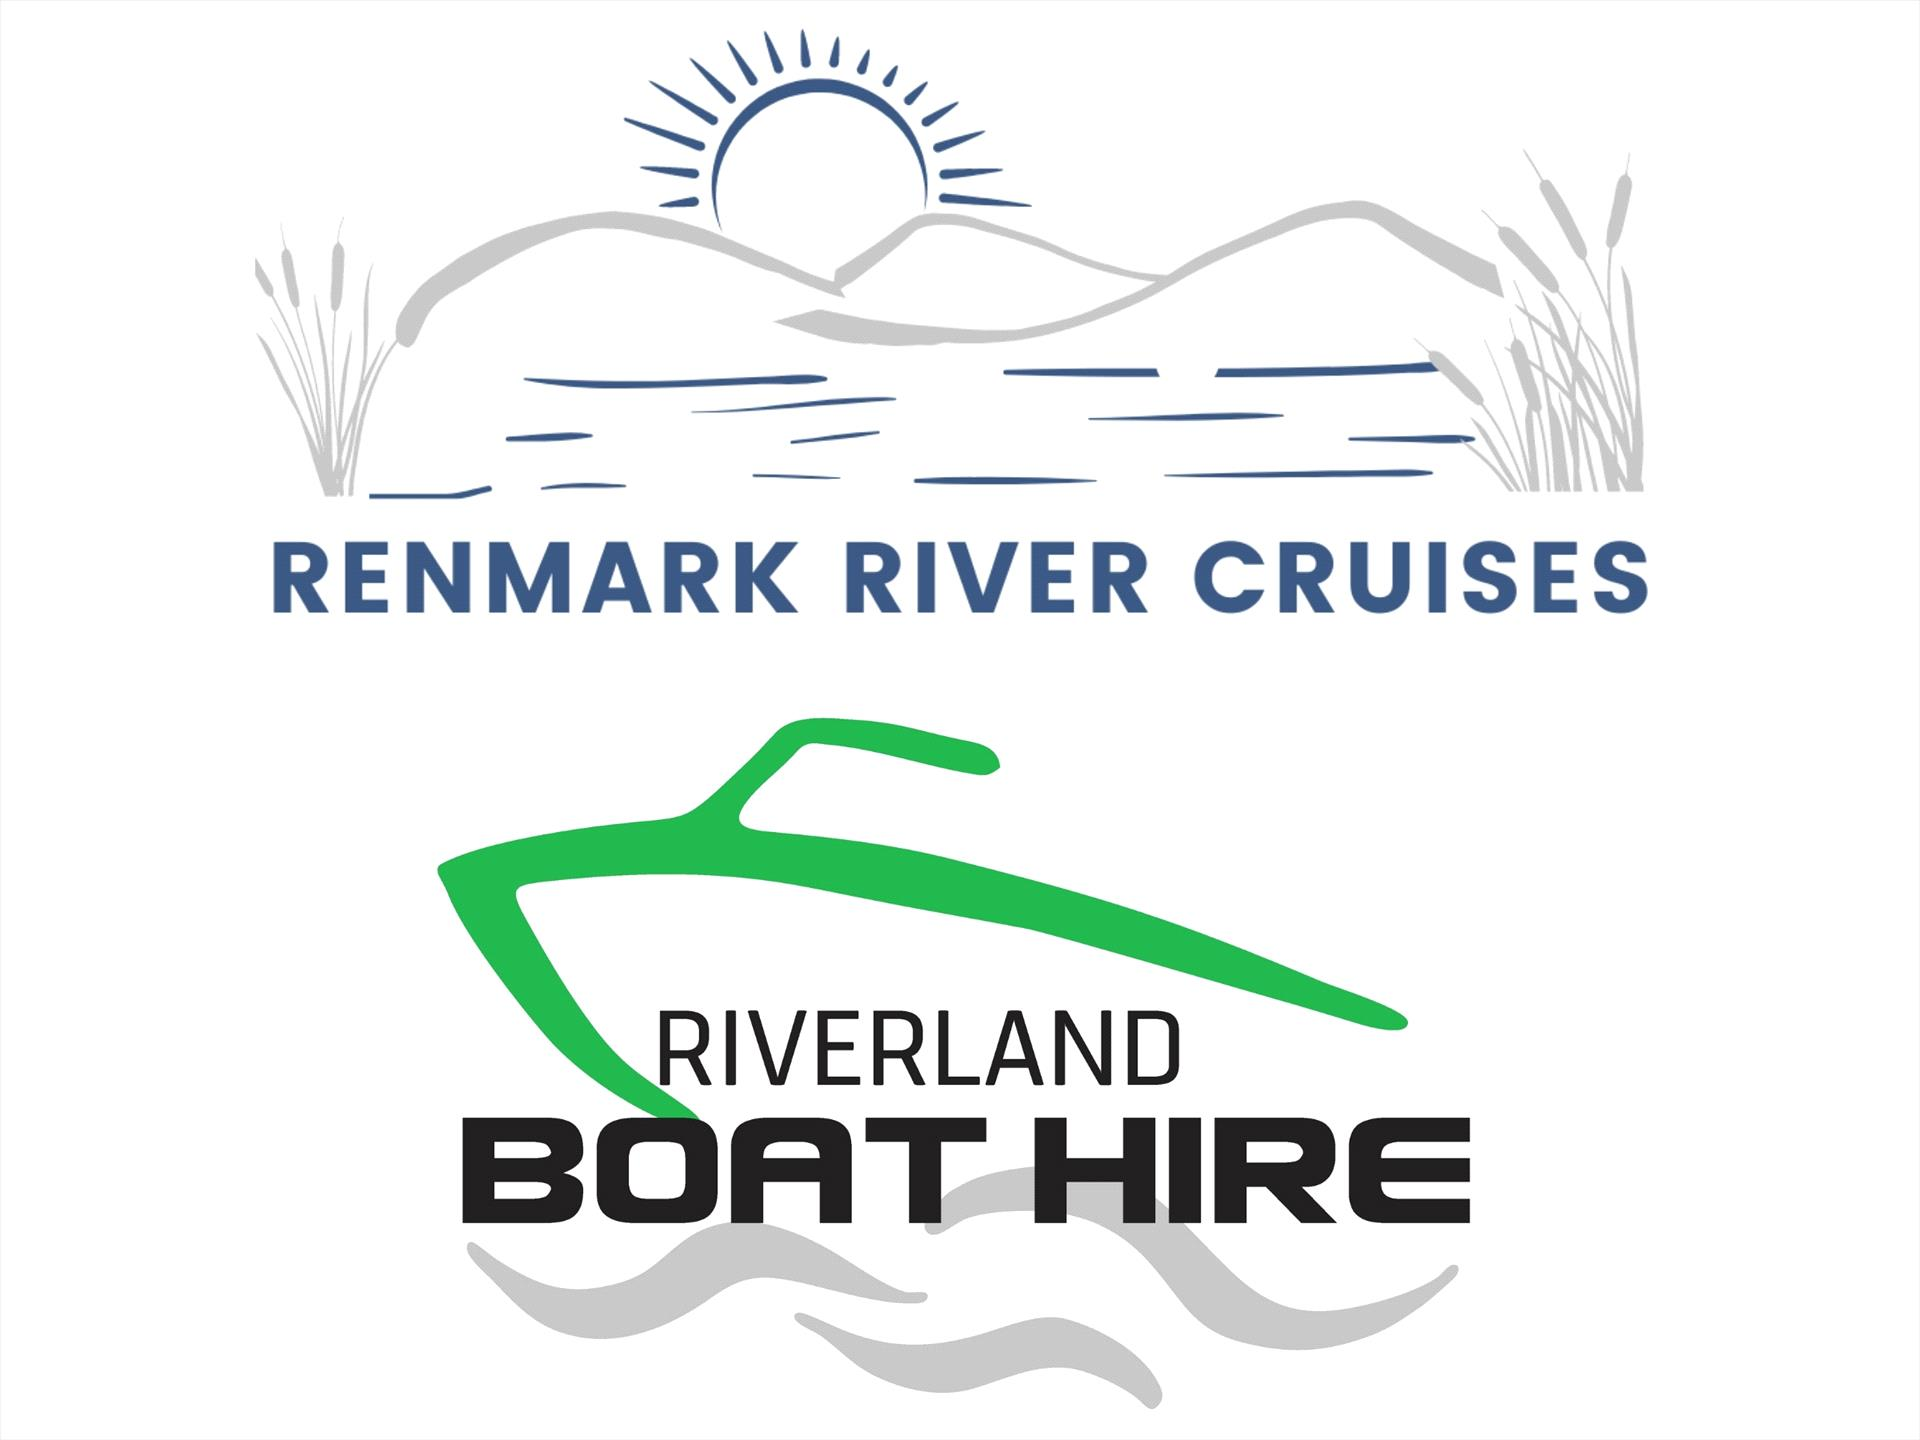 Riverland Boat Hire & Renmark River Cruises